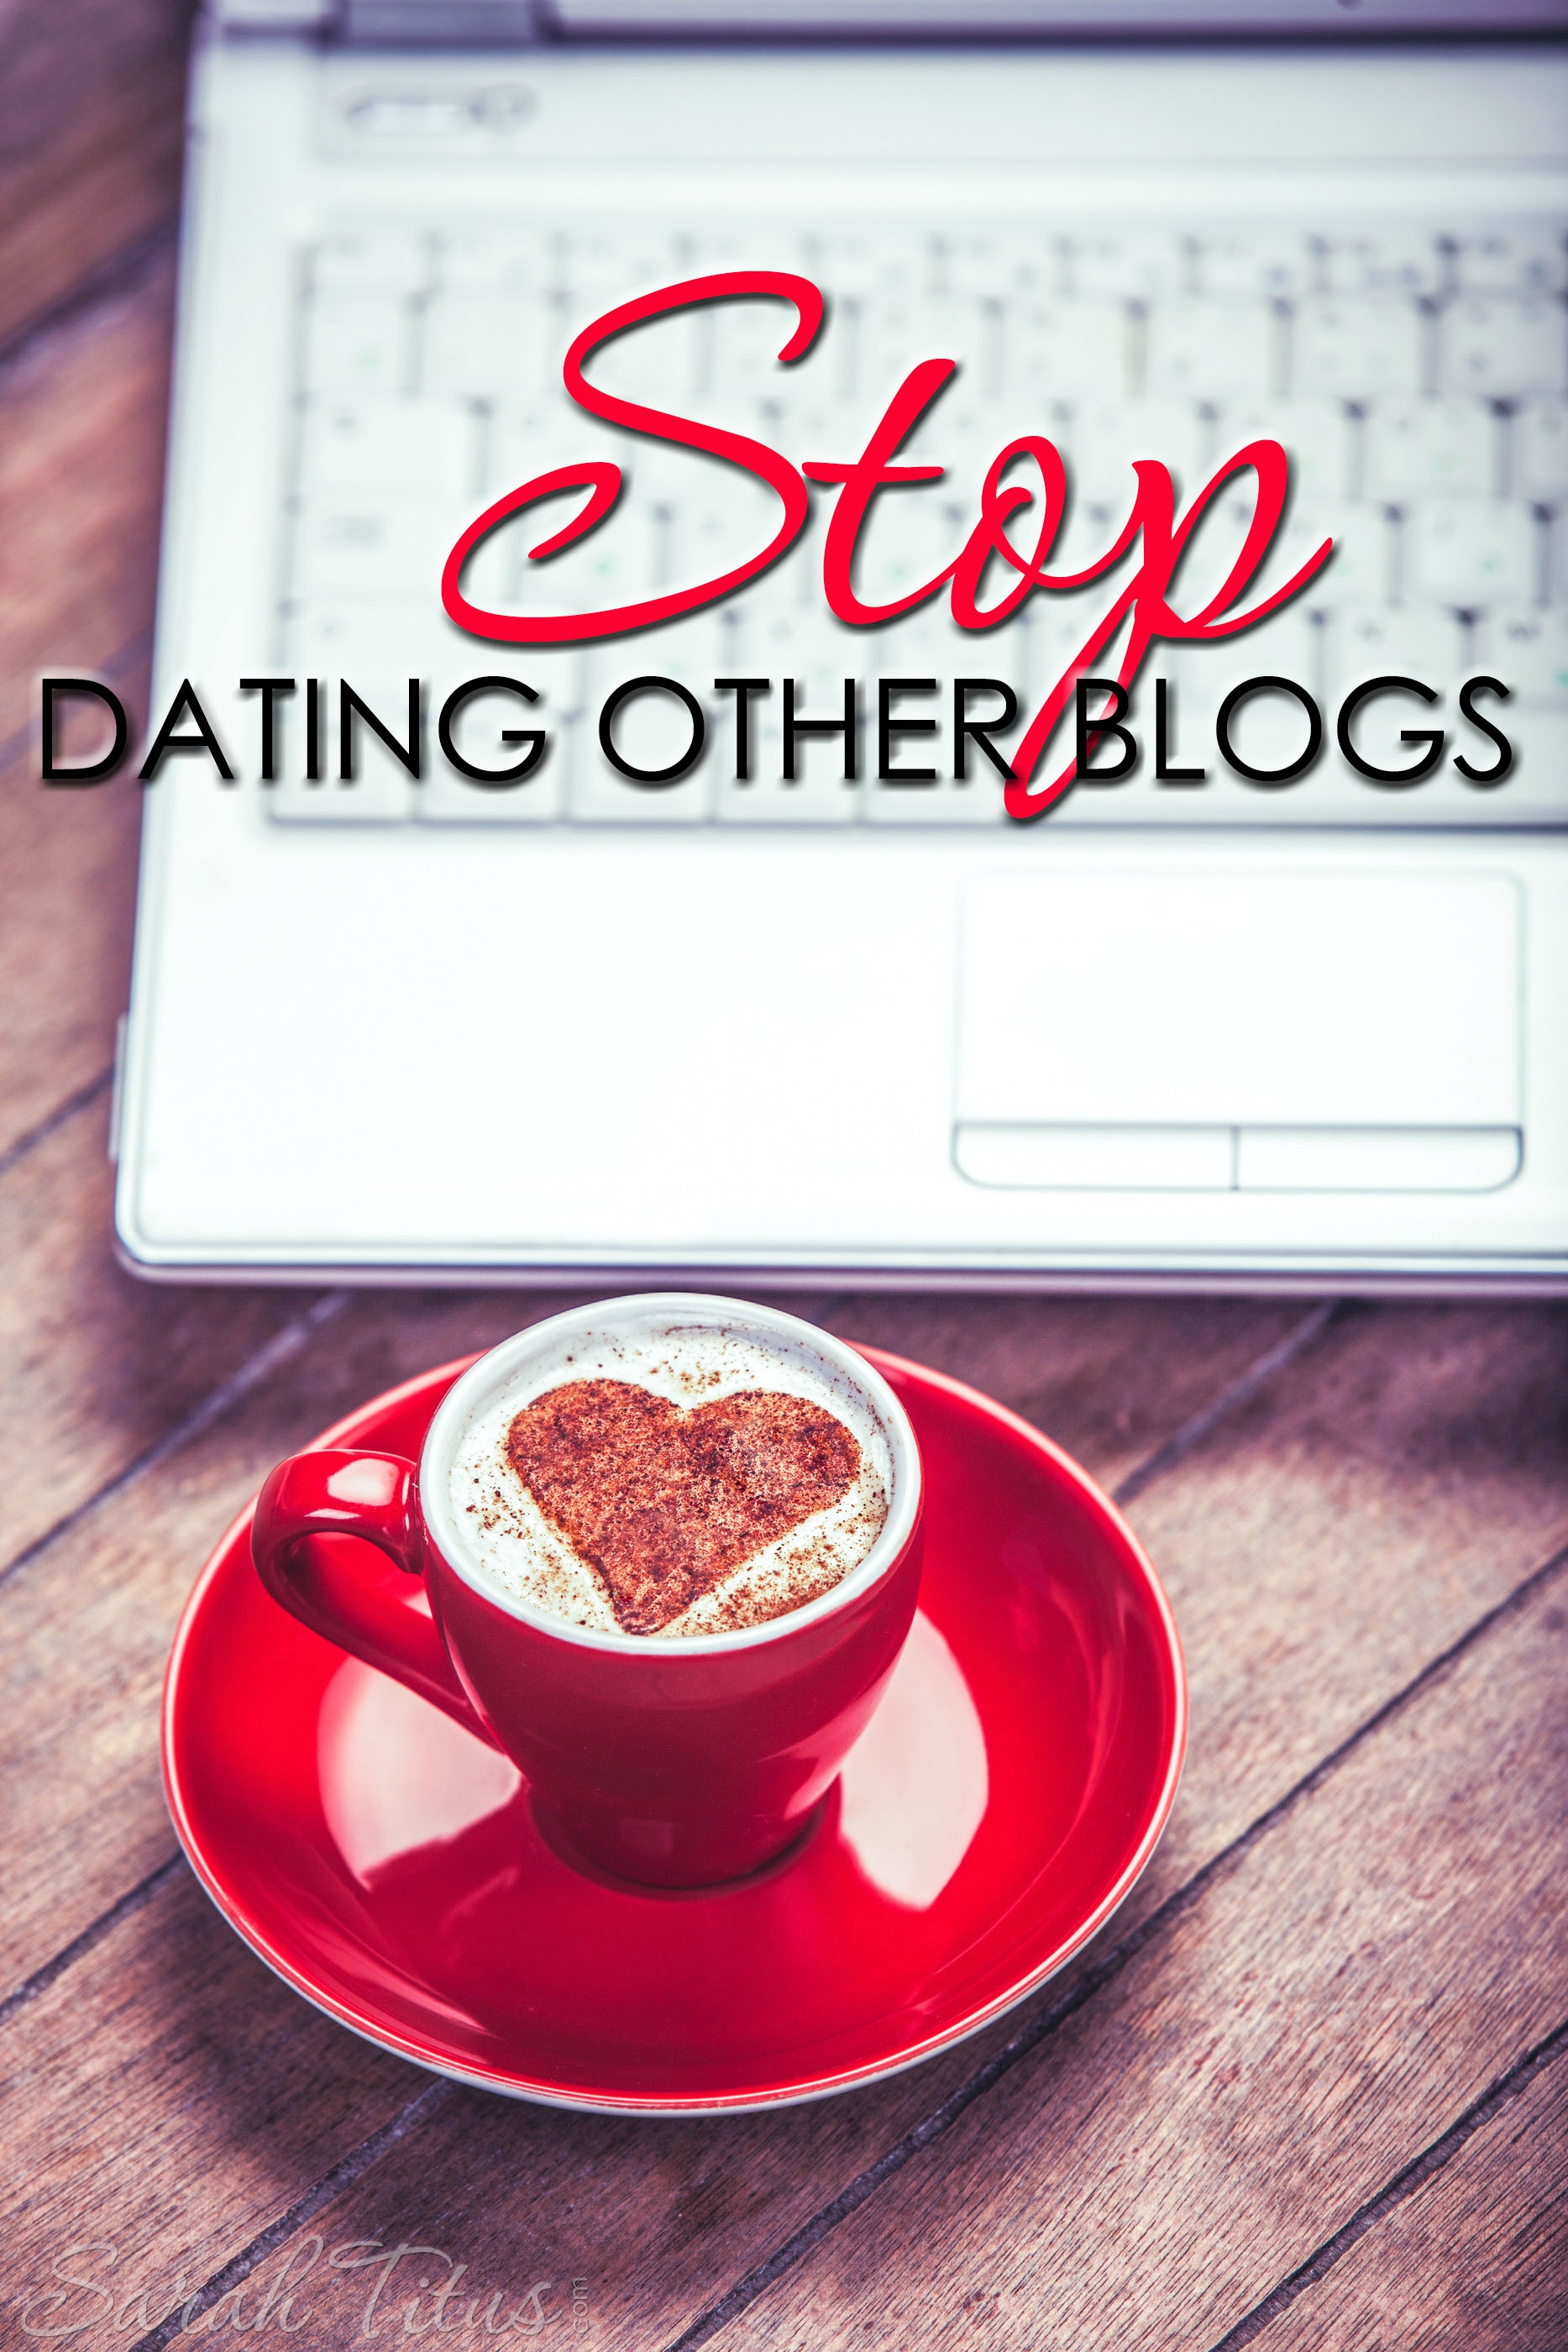 If you're rushing around, listening to what every blogger has to say, you're short-changing yourself in a major way. You need to stop dating other blogs and commit to these three things.